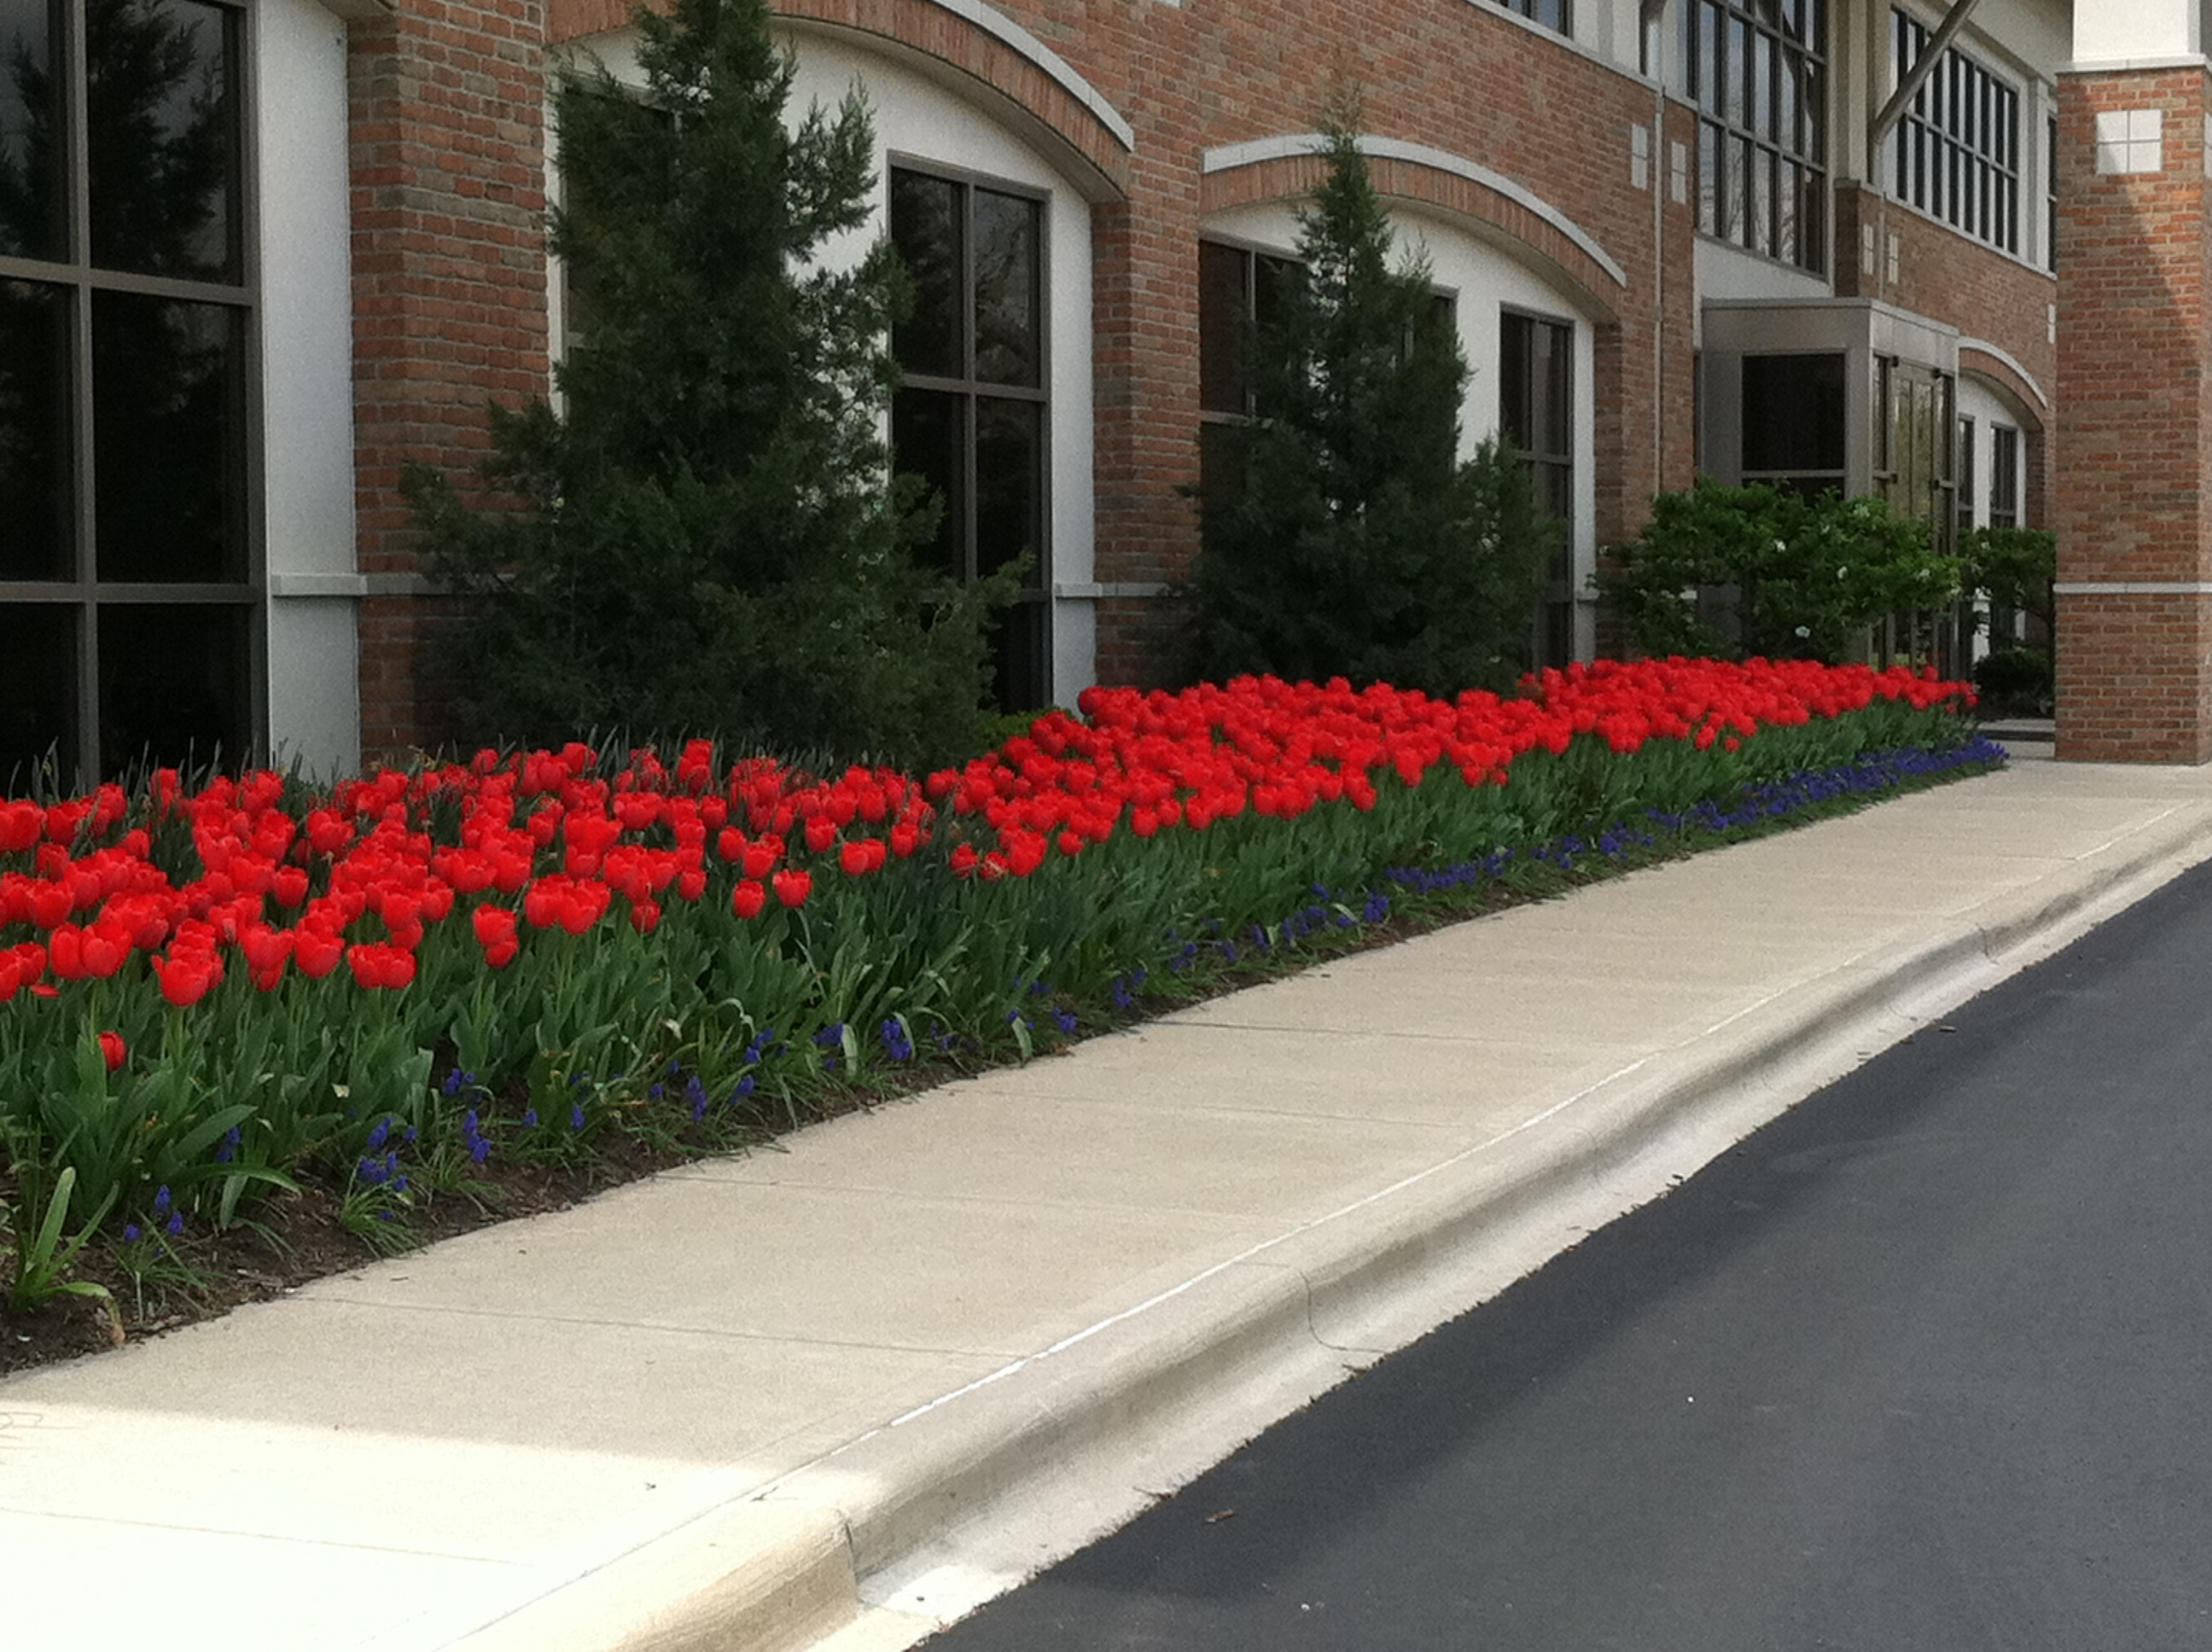 Plant spring flowers now buck and sons landscape services spring flowering bulbs let you know that winter is finally over beautiful flower displays can be enjoyed at your home office or in the comfort of your own mightylinksfo